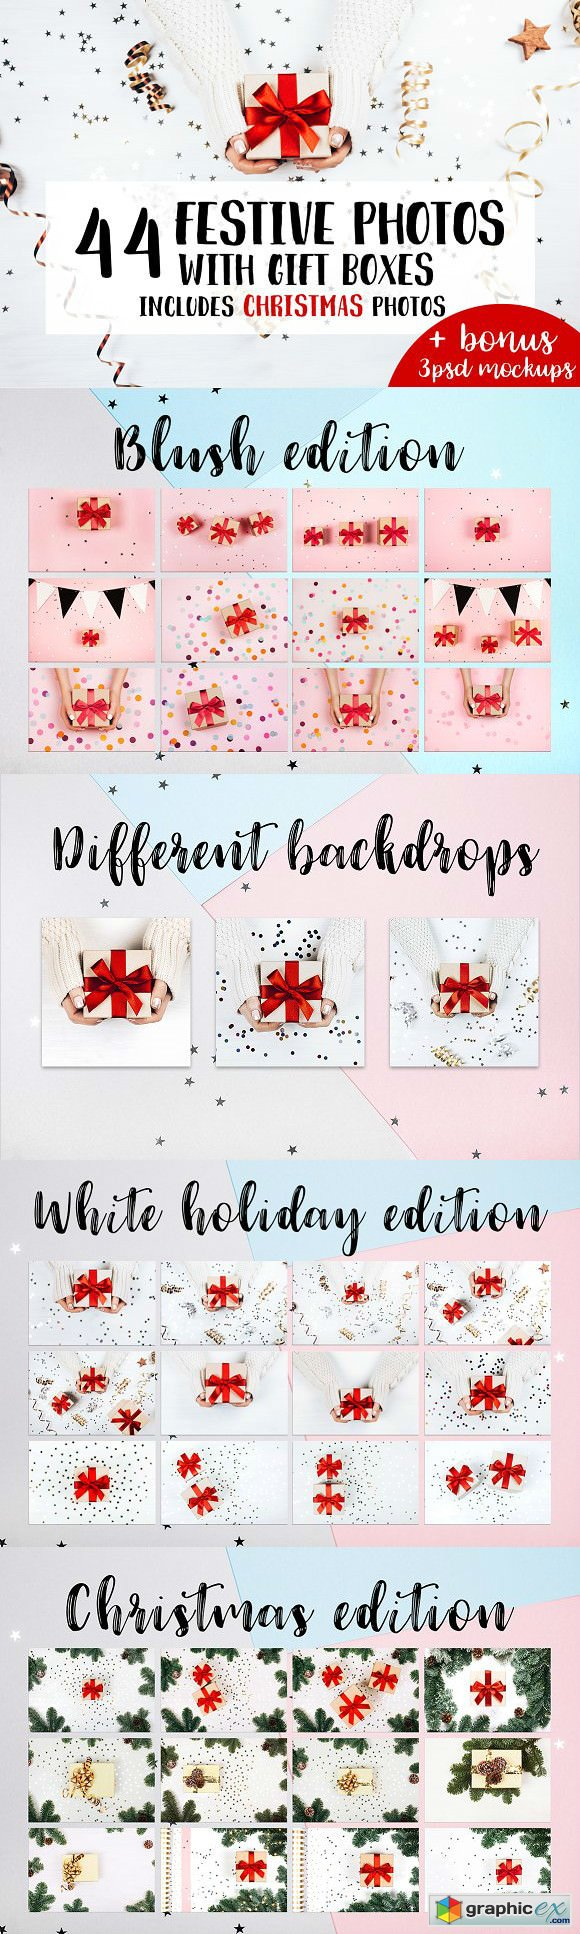 44 Festive Photos With Gift Boxes